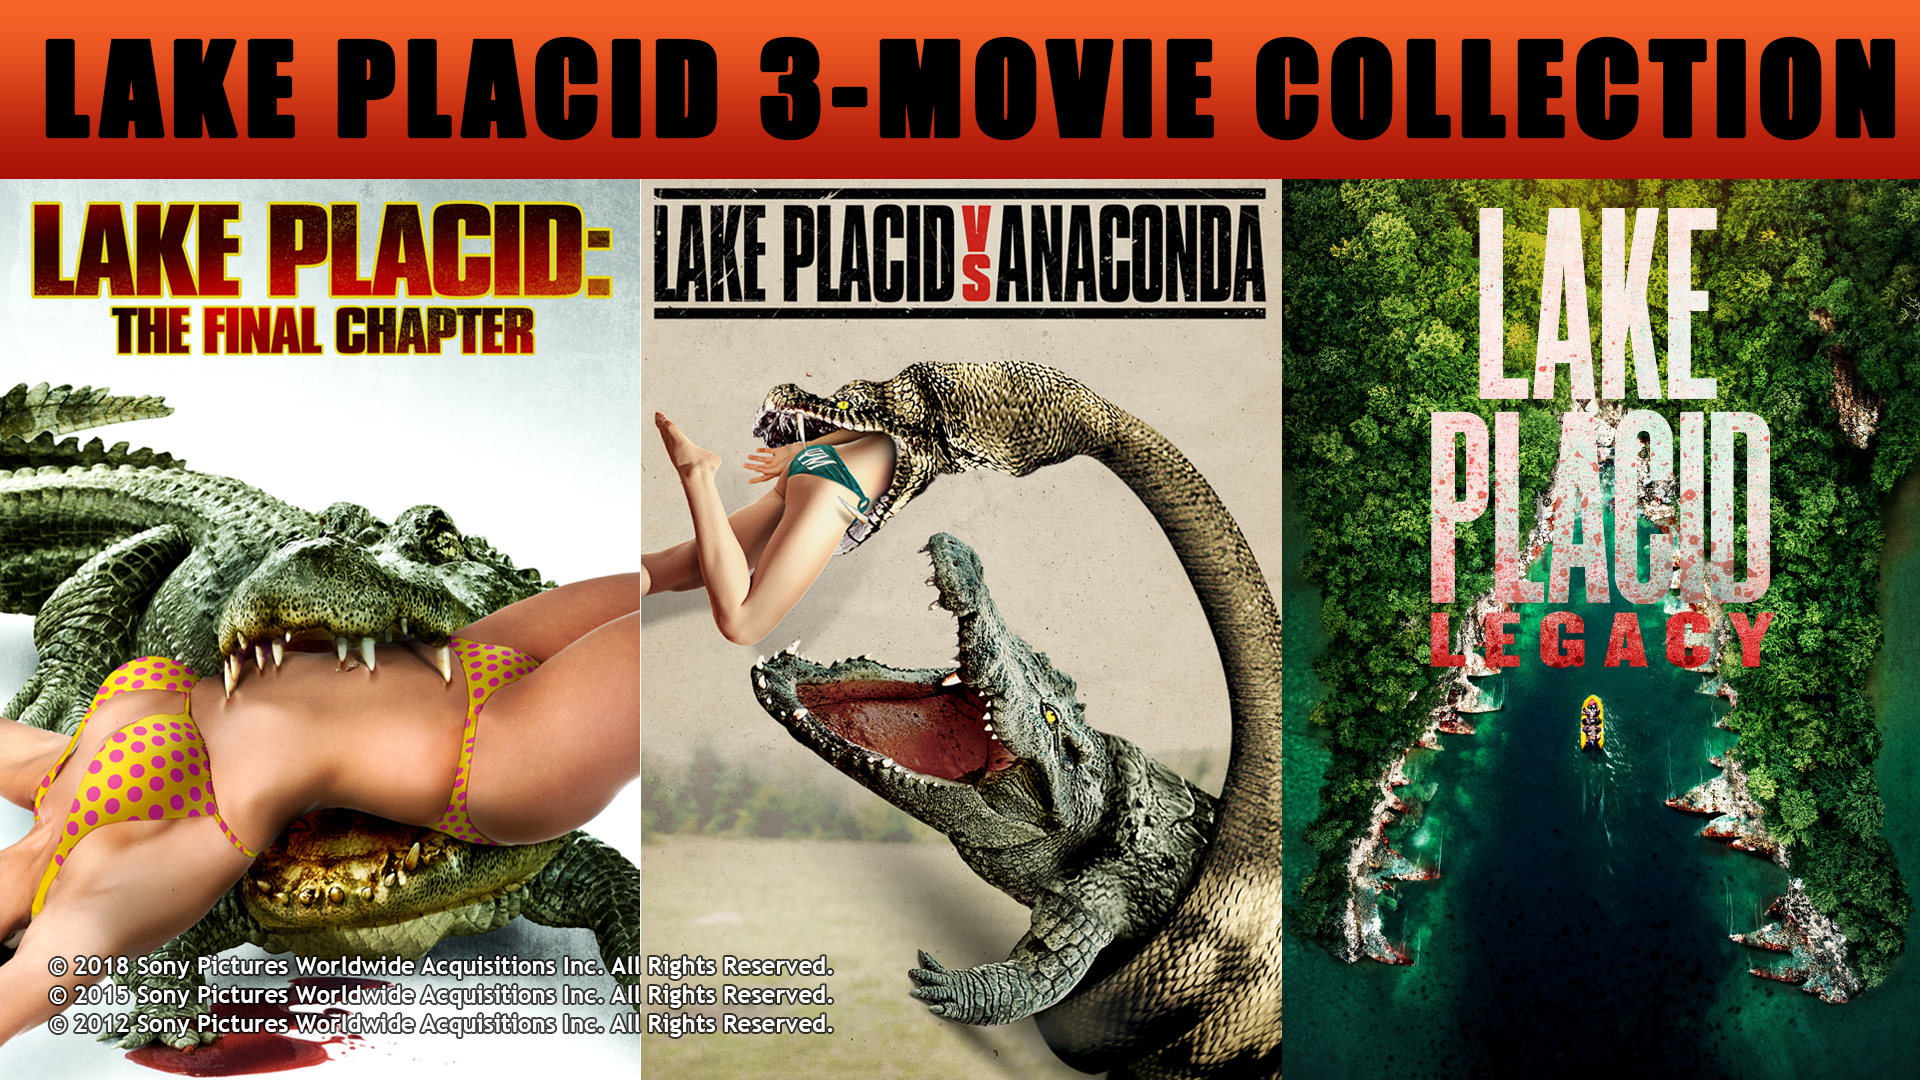 LAKE PLACID: 3-MOVIE COLLECTION